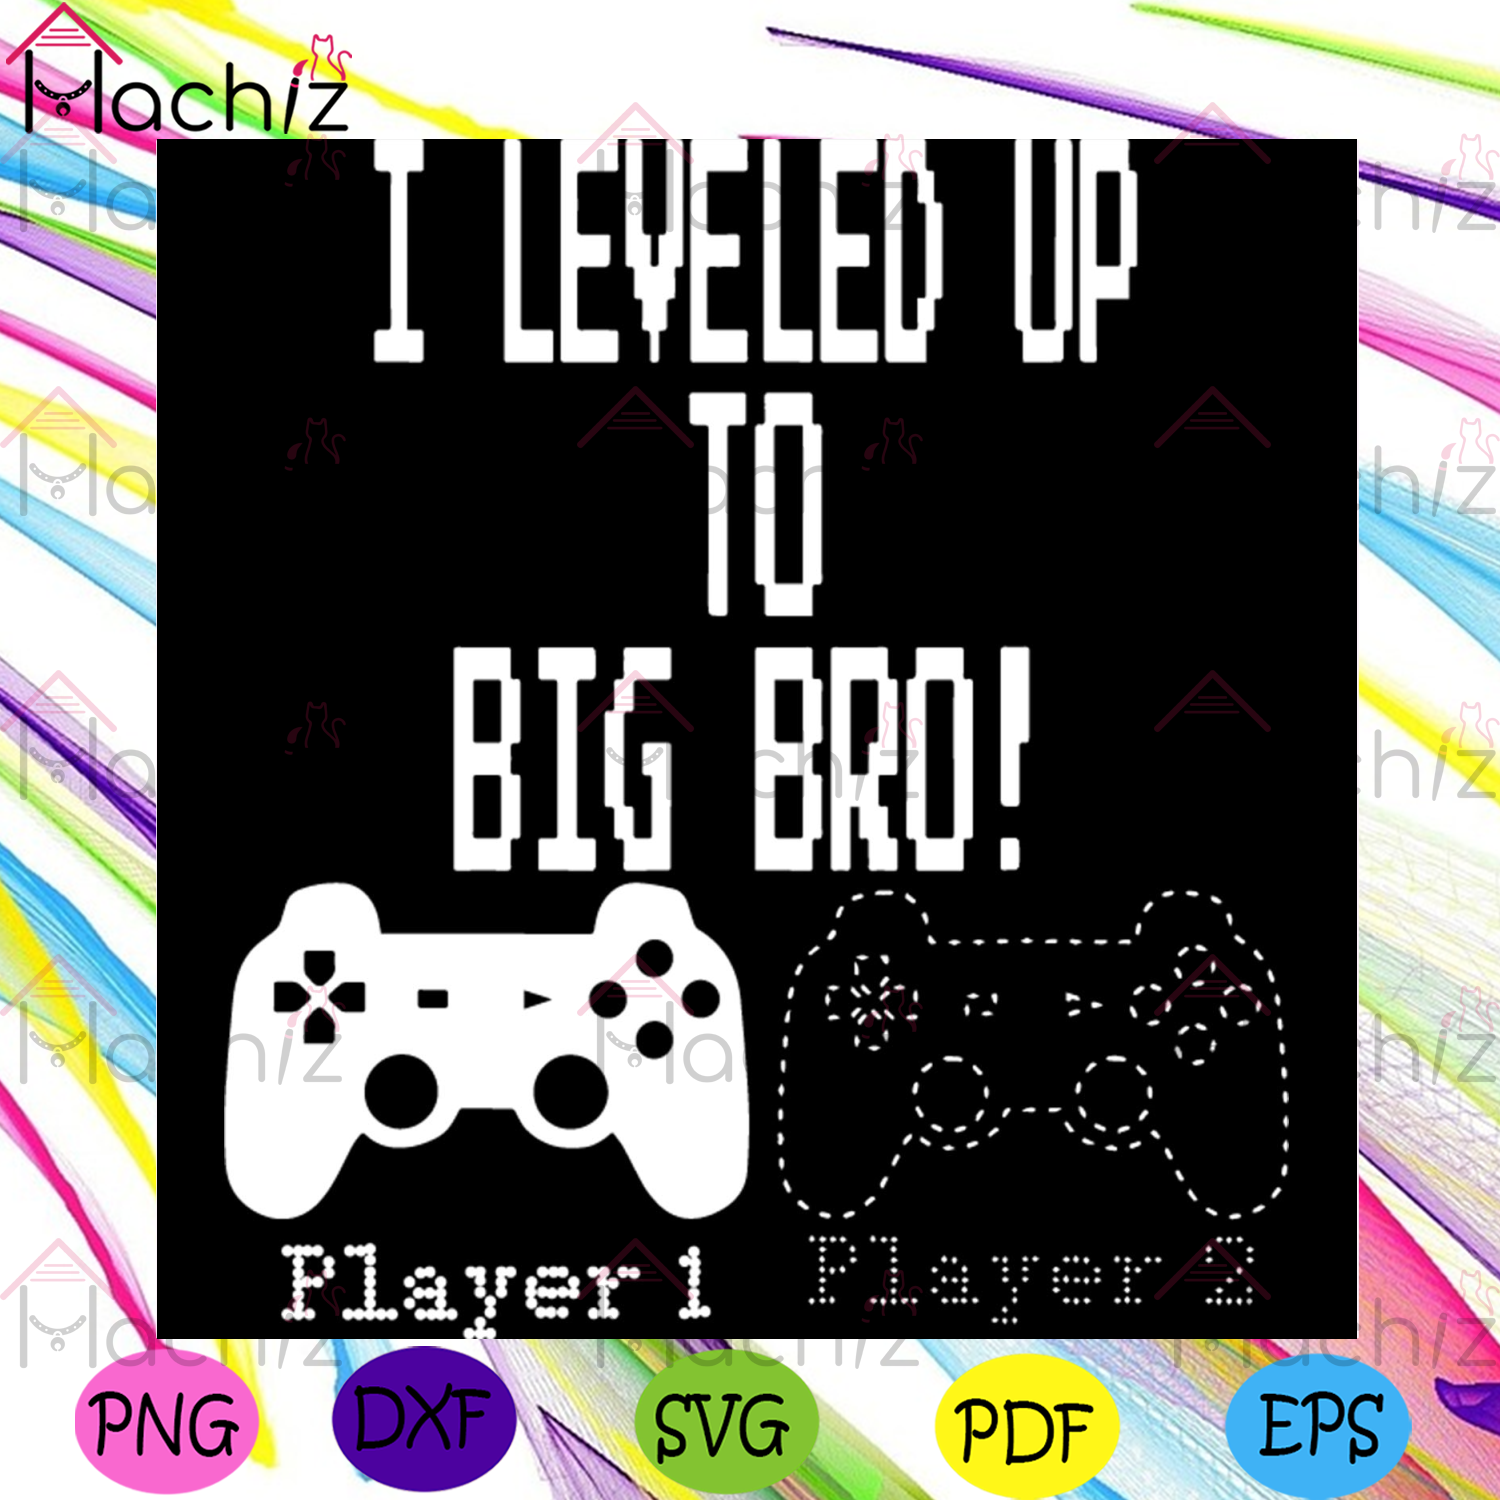 I Level Up To Big Bro Svg, Trending Svg, Family Svg, Father Svg, Brother Svg, Game Svg, Gamer Svg, Gaming Svg, Player 1 Svg, Player 2 Svg, Game Controller Svg, Level Up Svg, Family Gift Svg, Baby Svg, Mother Svg,